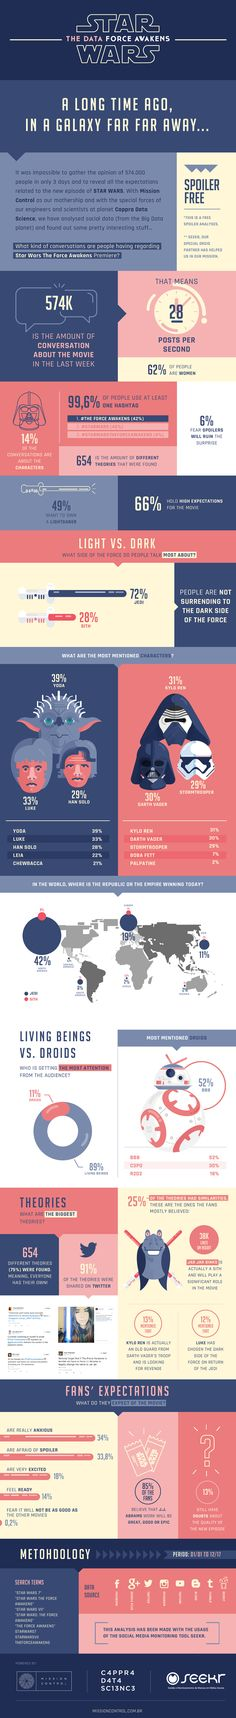 Infographic | Star Wars: The Force Awakens on Behance